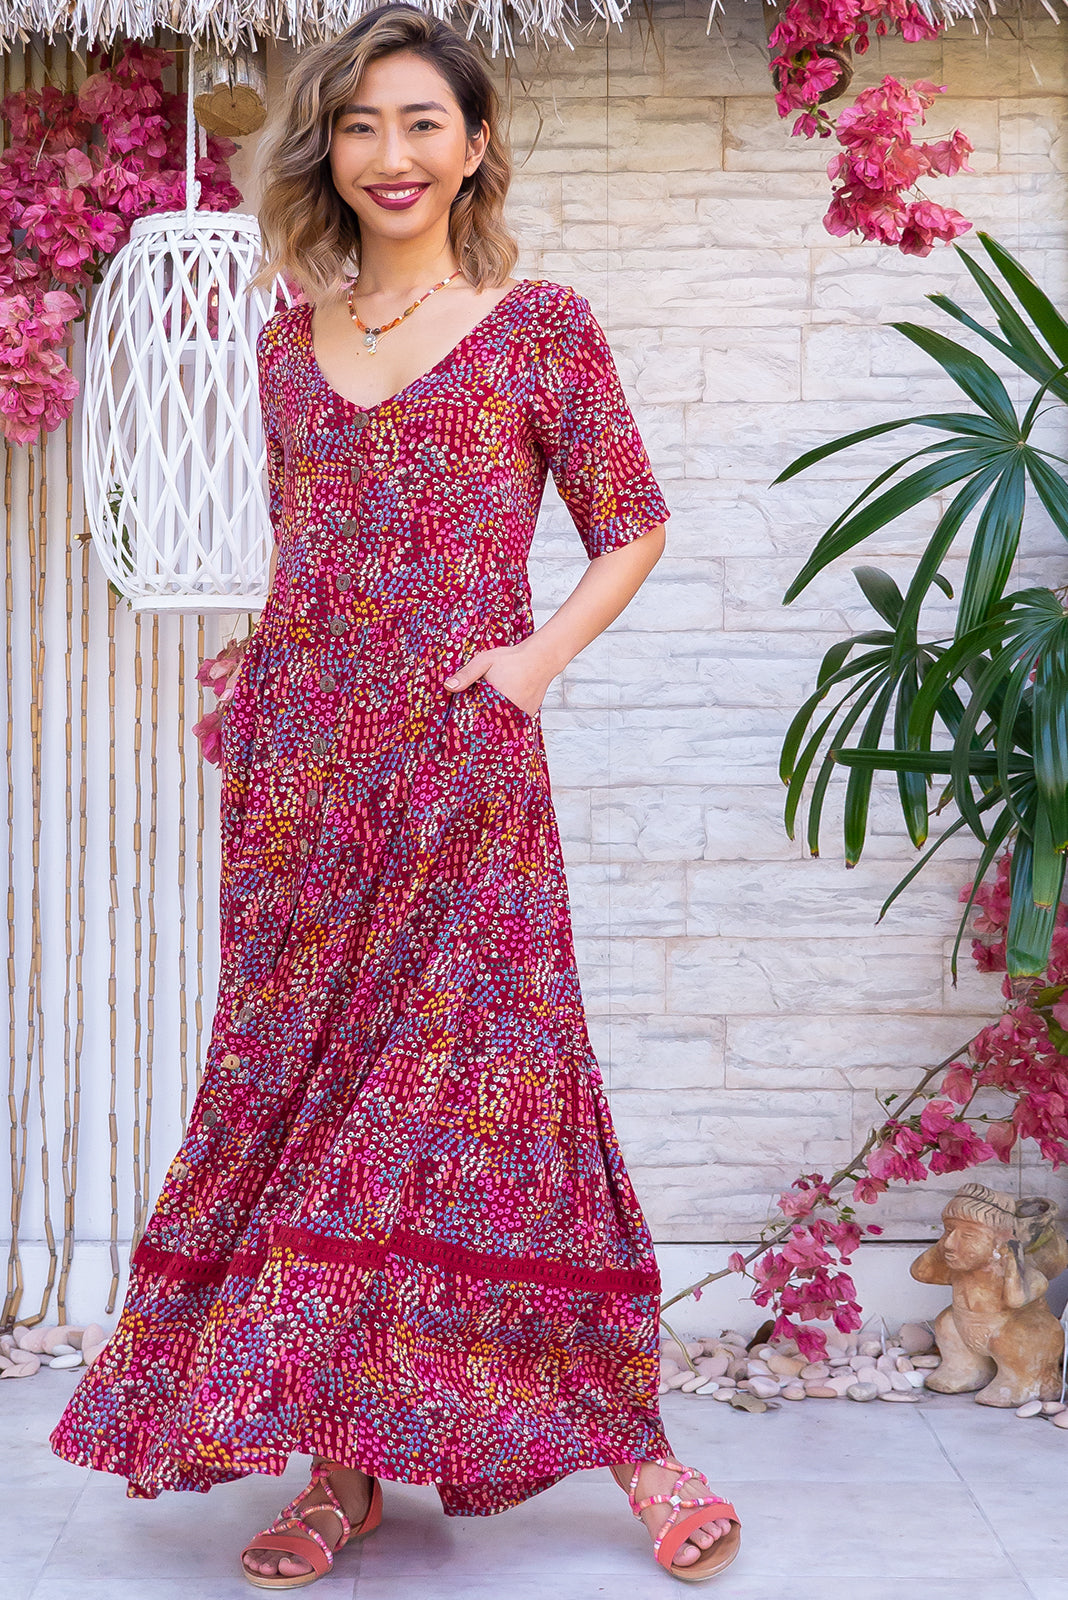 Georgiana Lah De Dah Red Maxi Dress features functional button front, buttons and side tabs at waist, side pockets, tiered skirt with lace insert and 100% rayon in deep red base with colourful confetti floral design.